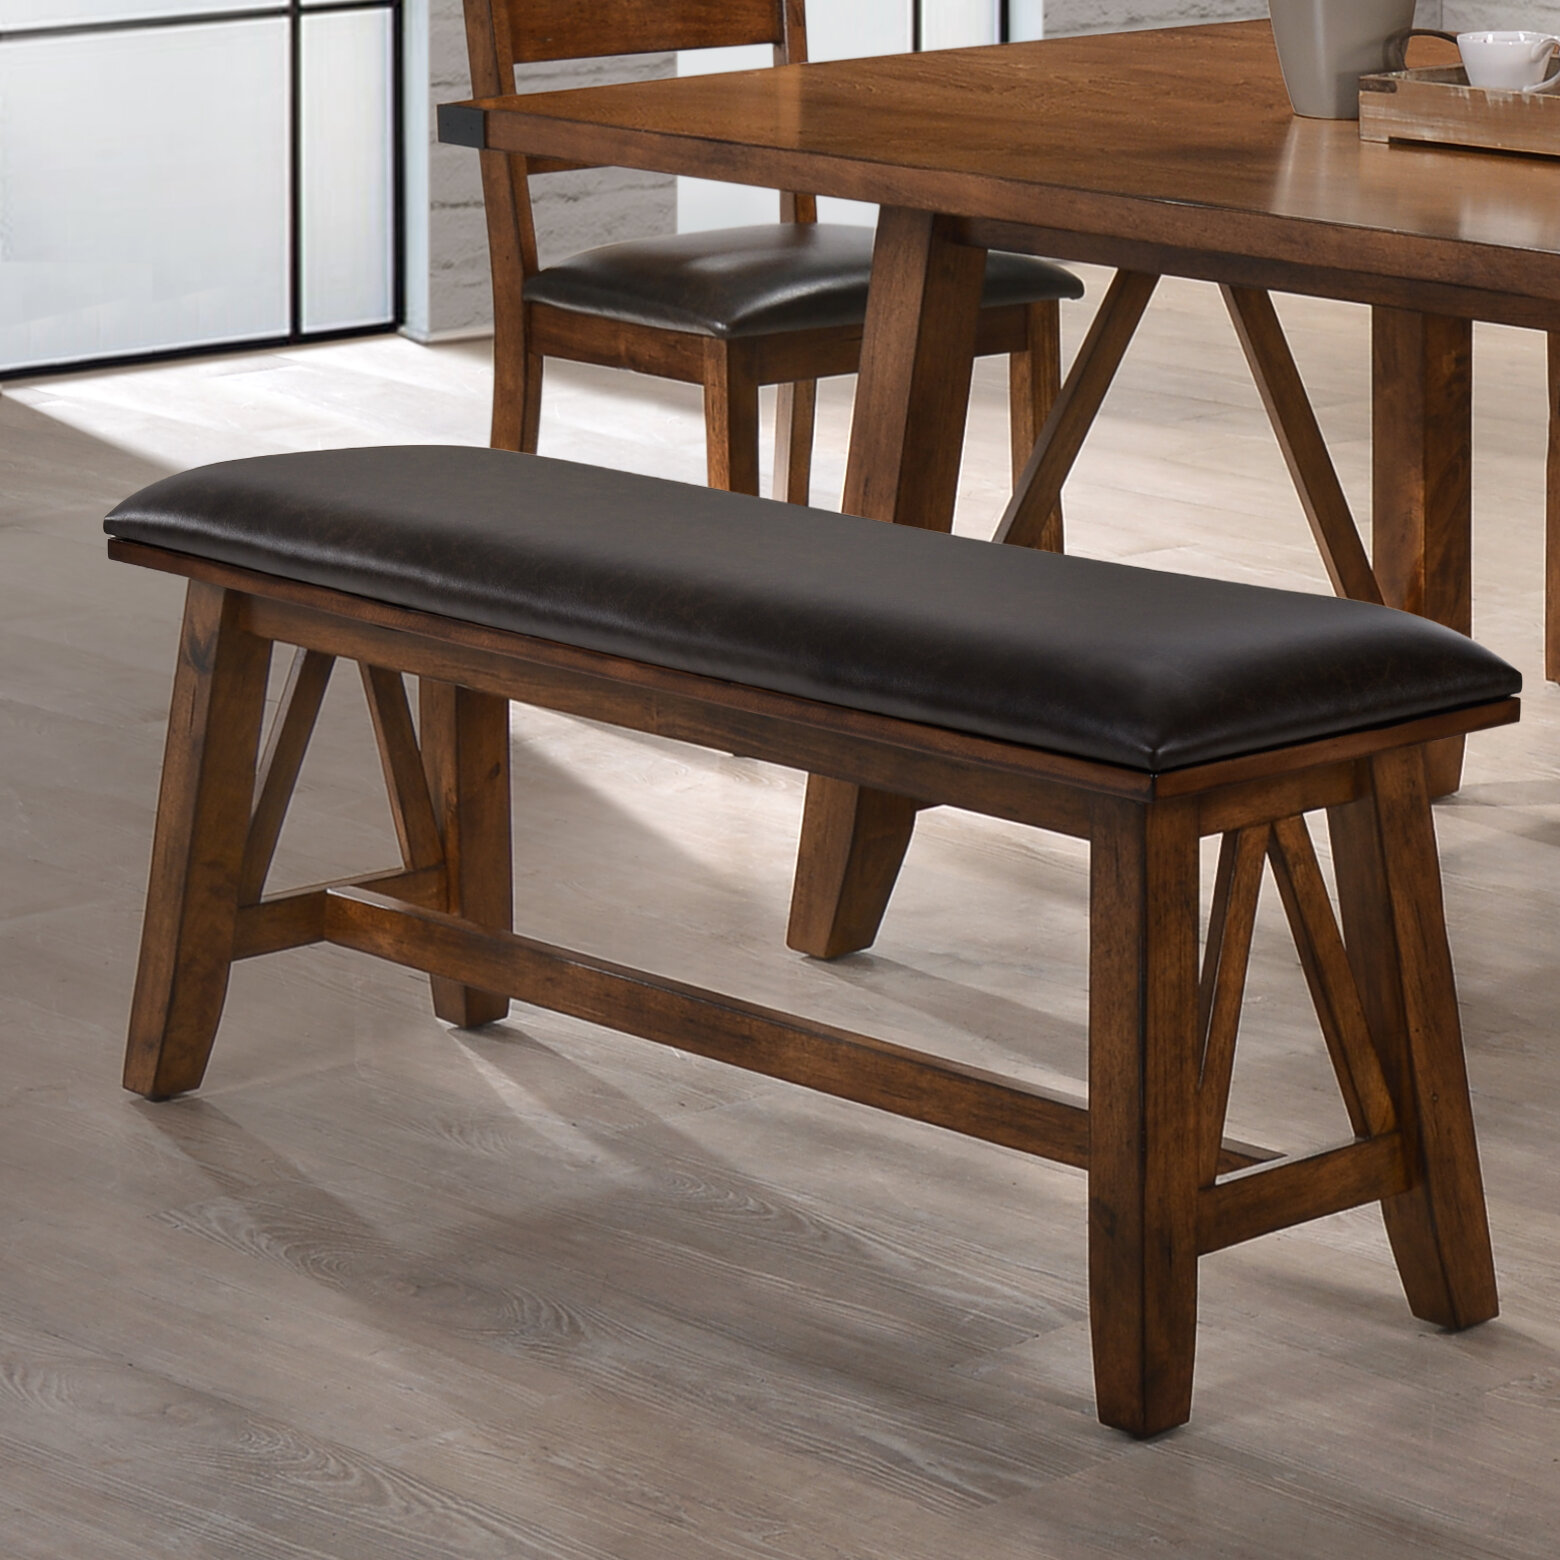 Ordinaire Loon Peak Moree Faux Leather Dining Bench | Wayfair